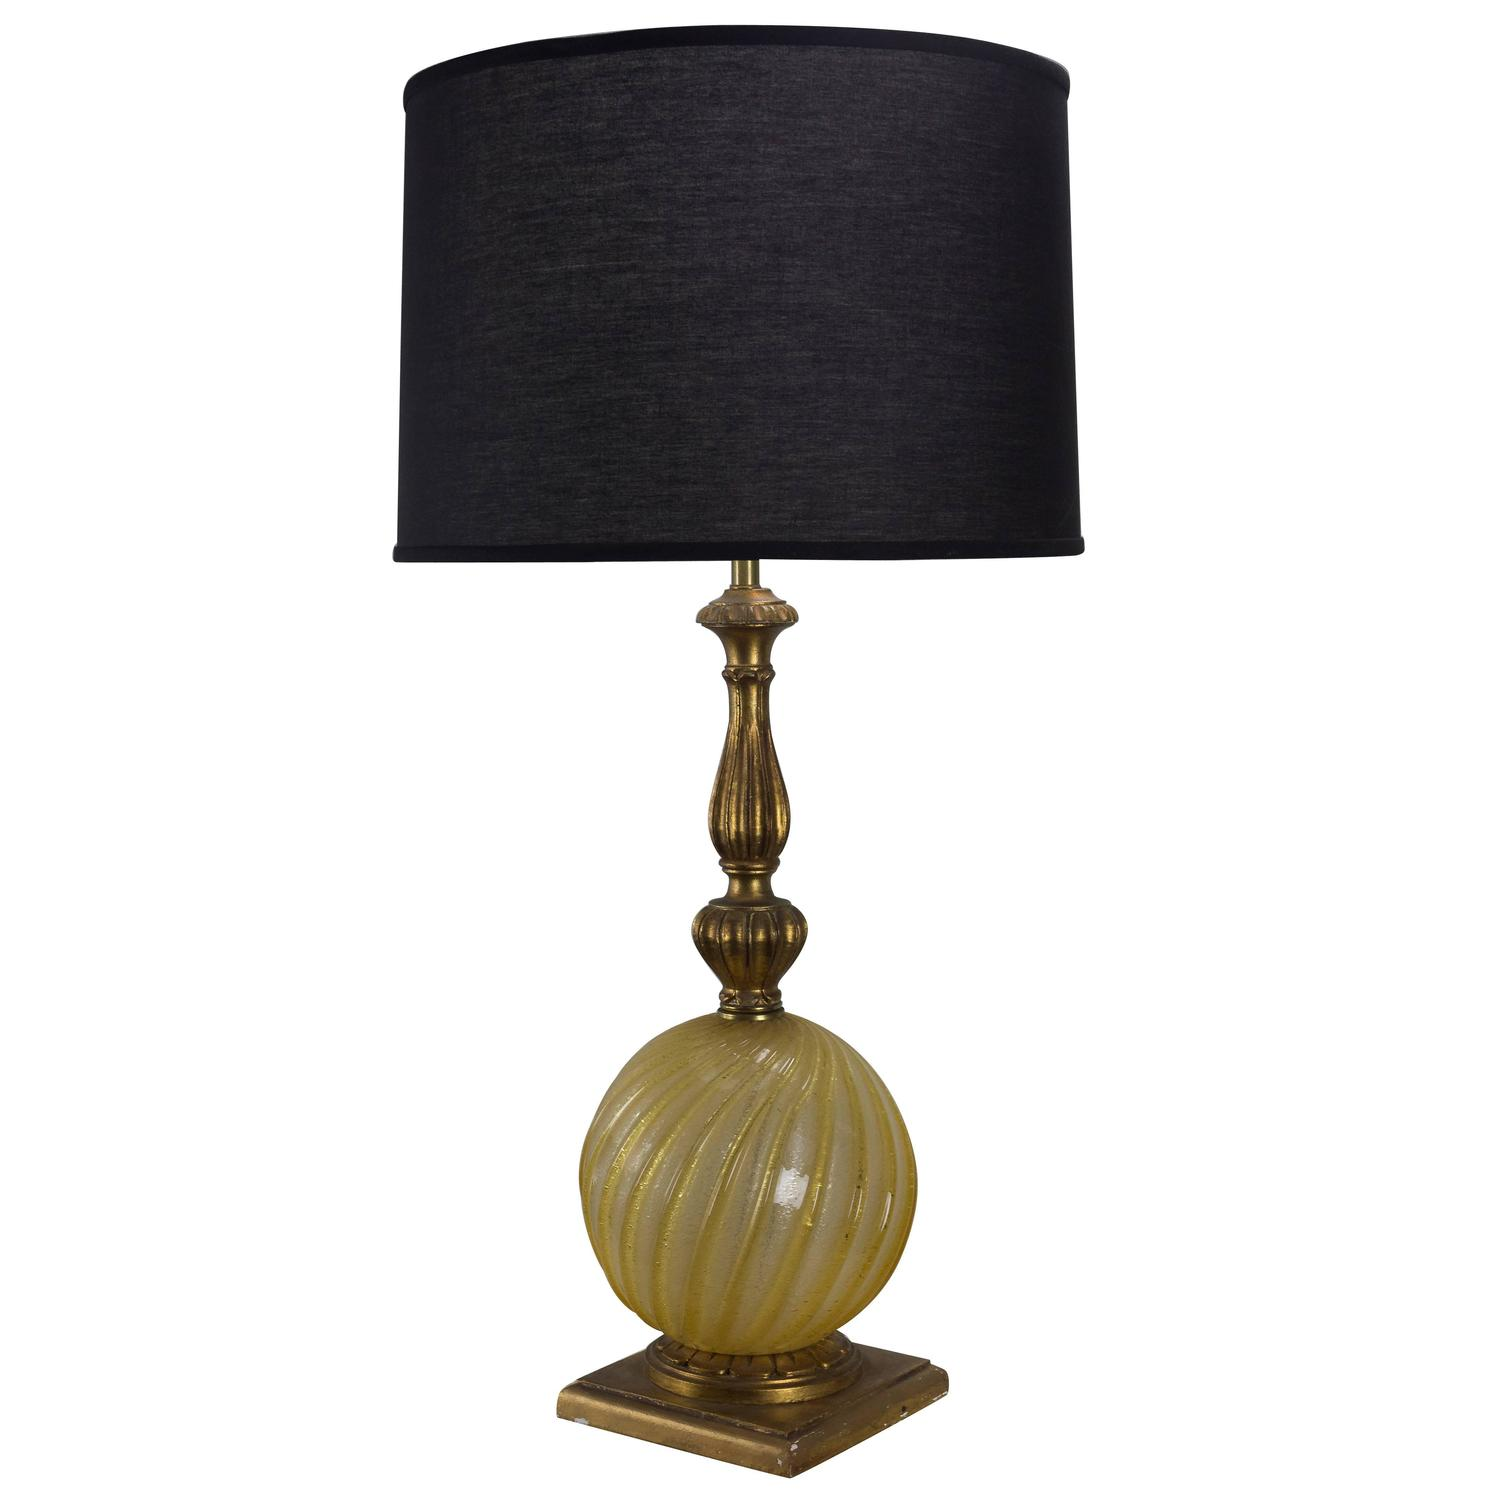 murano glass globe lamp for sale at 1stdibs. Black Bedroom Furniture Sets. Home Design Ideas